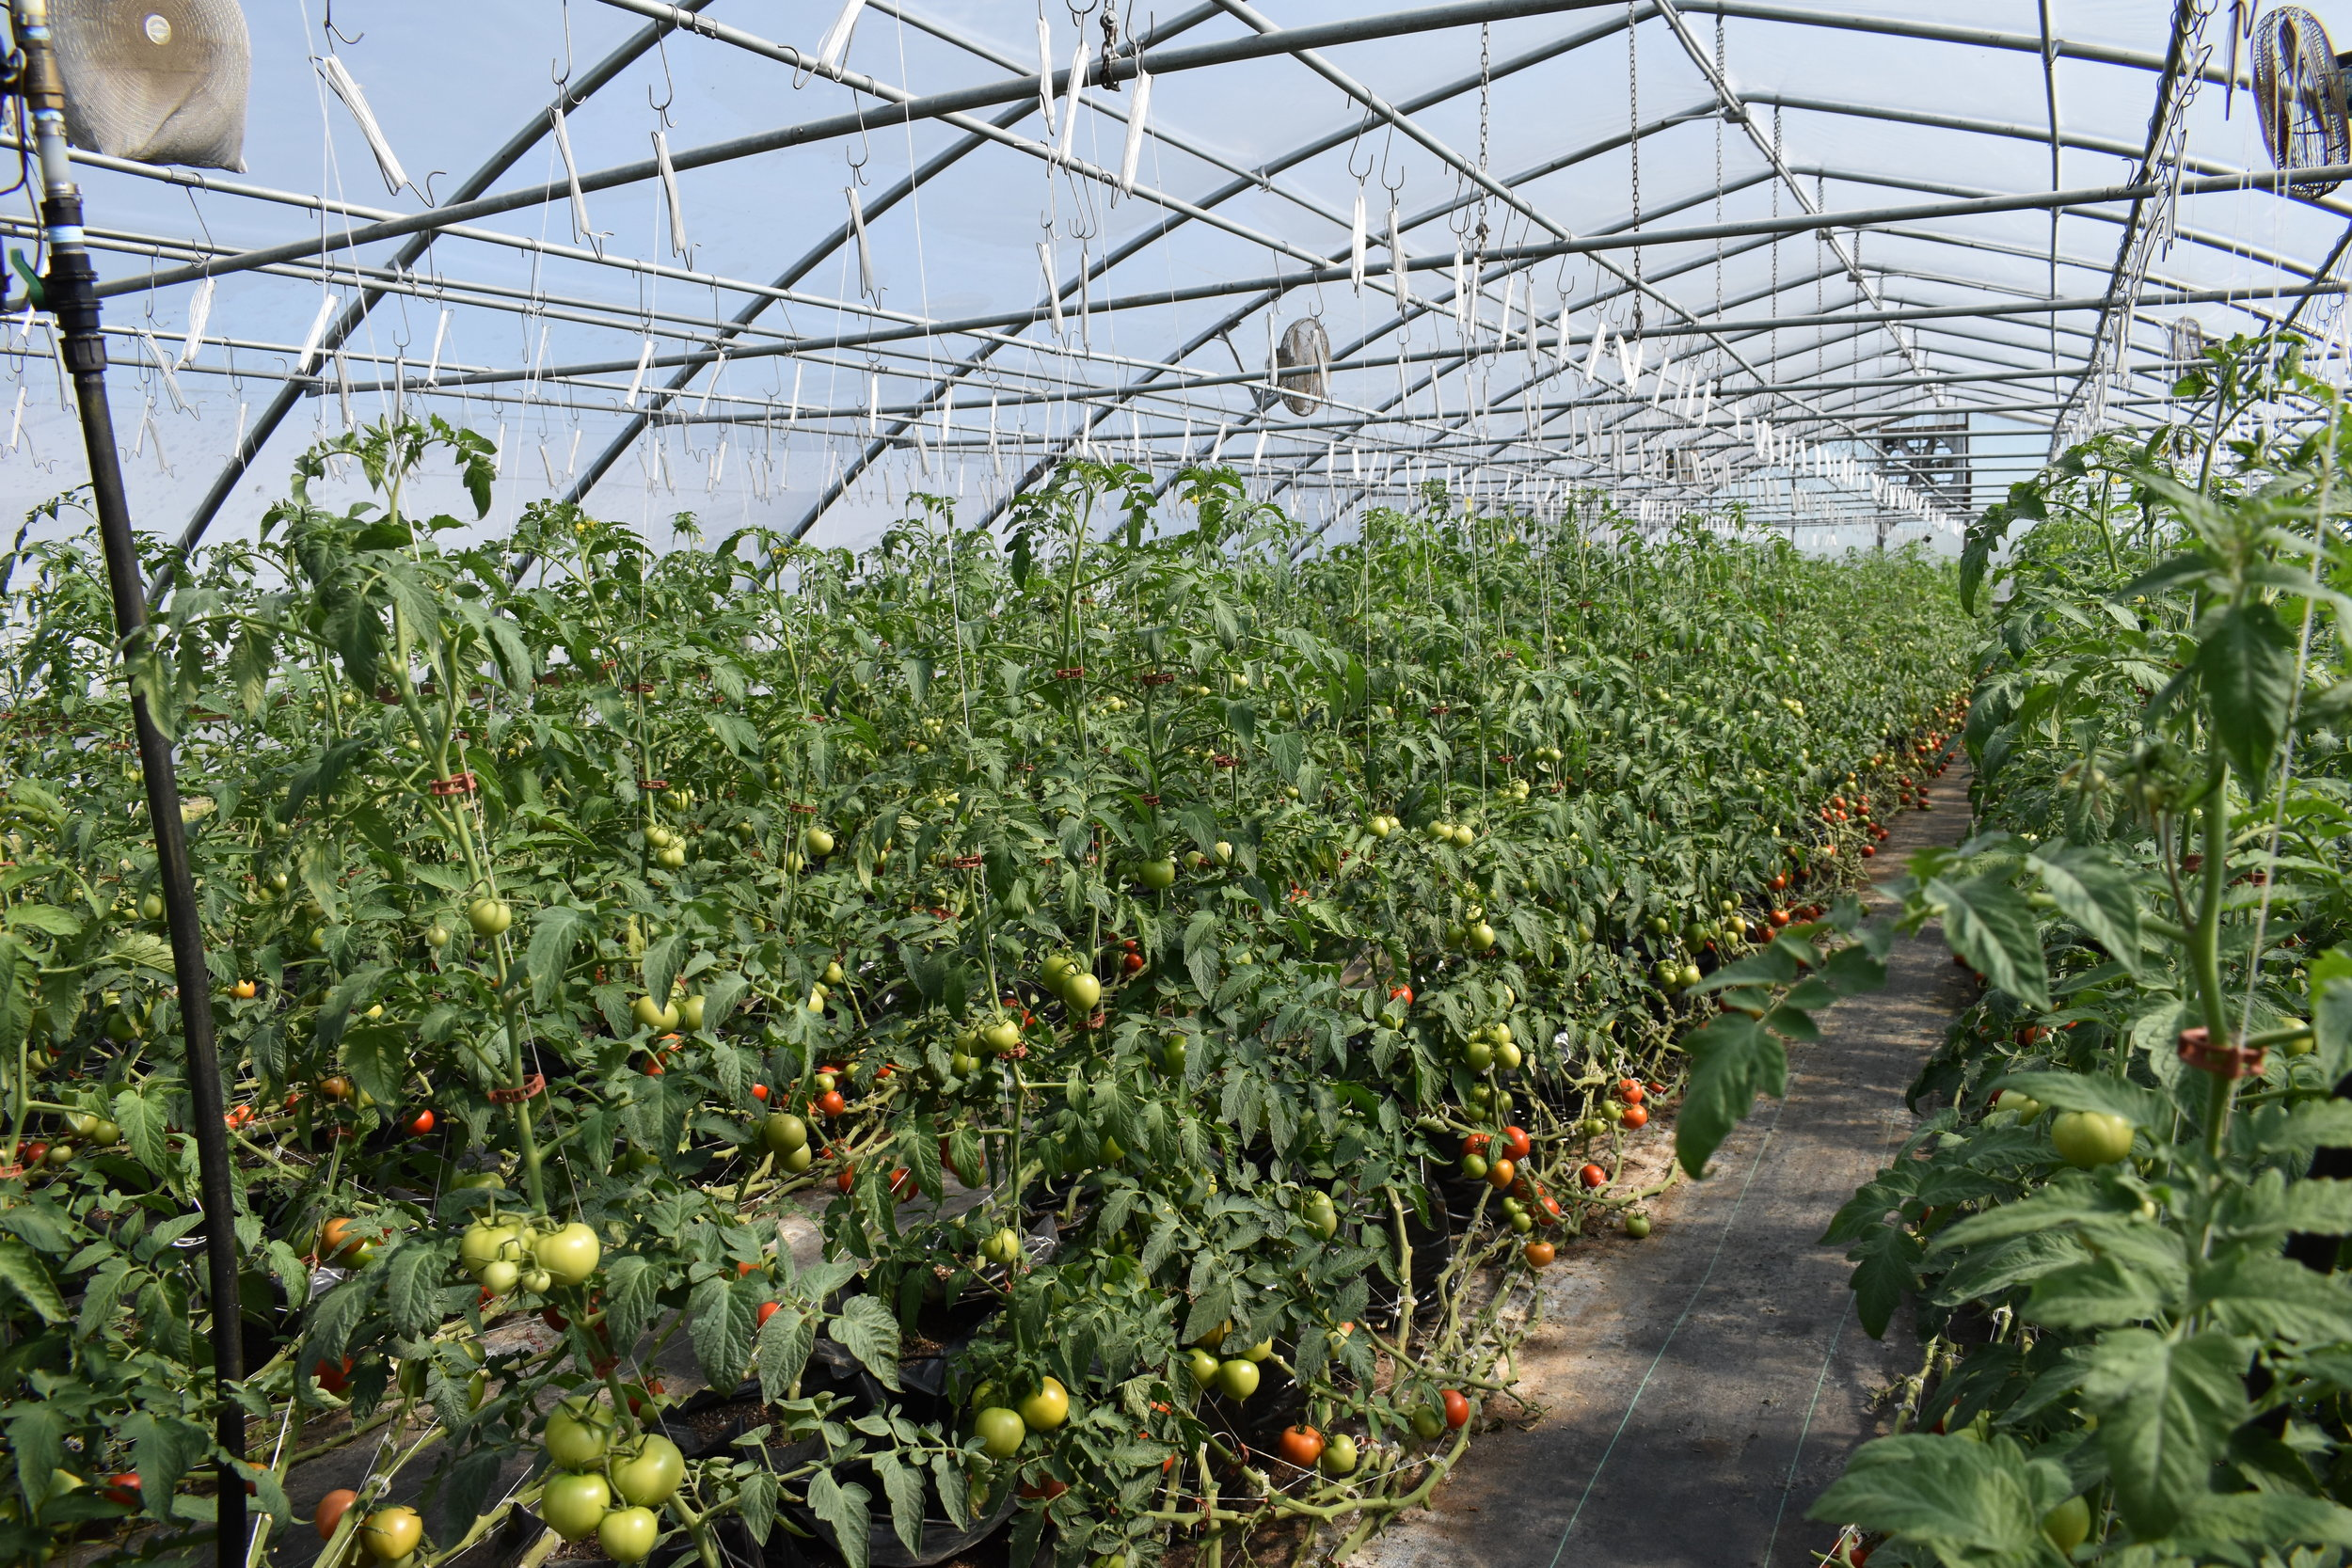 One of the tomato greenhouses